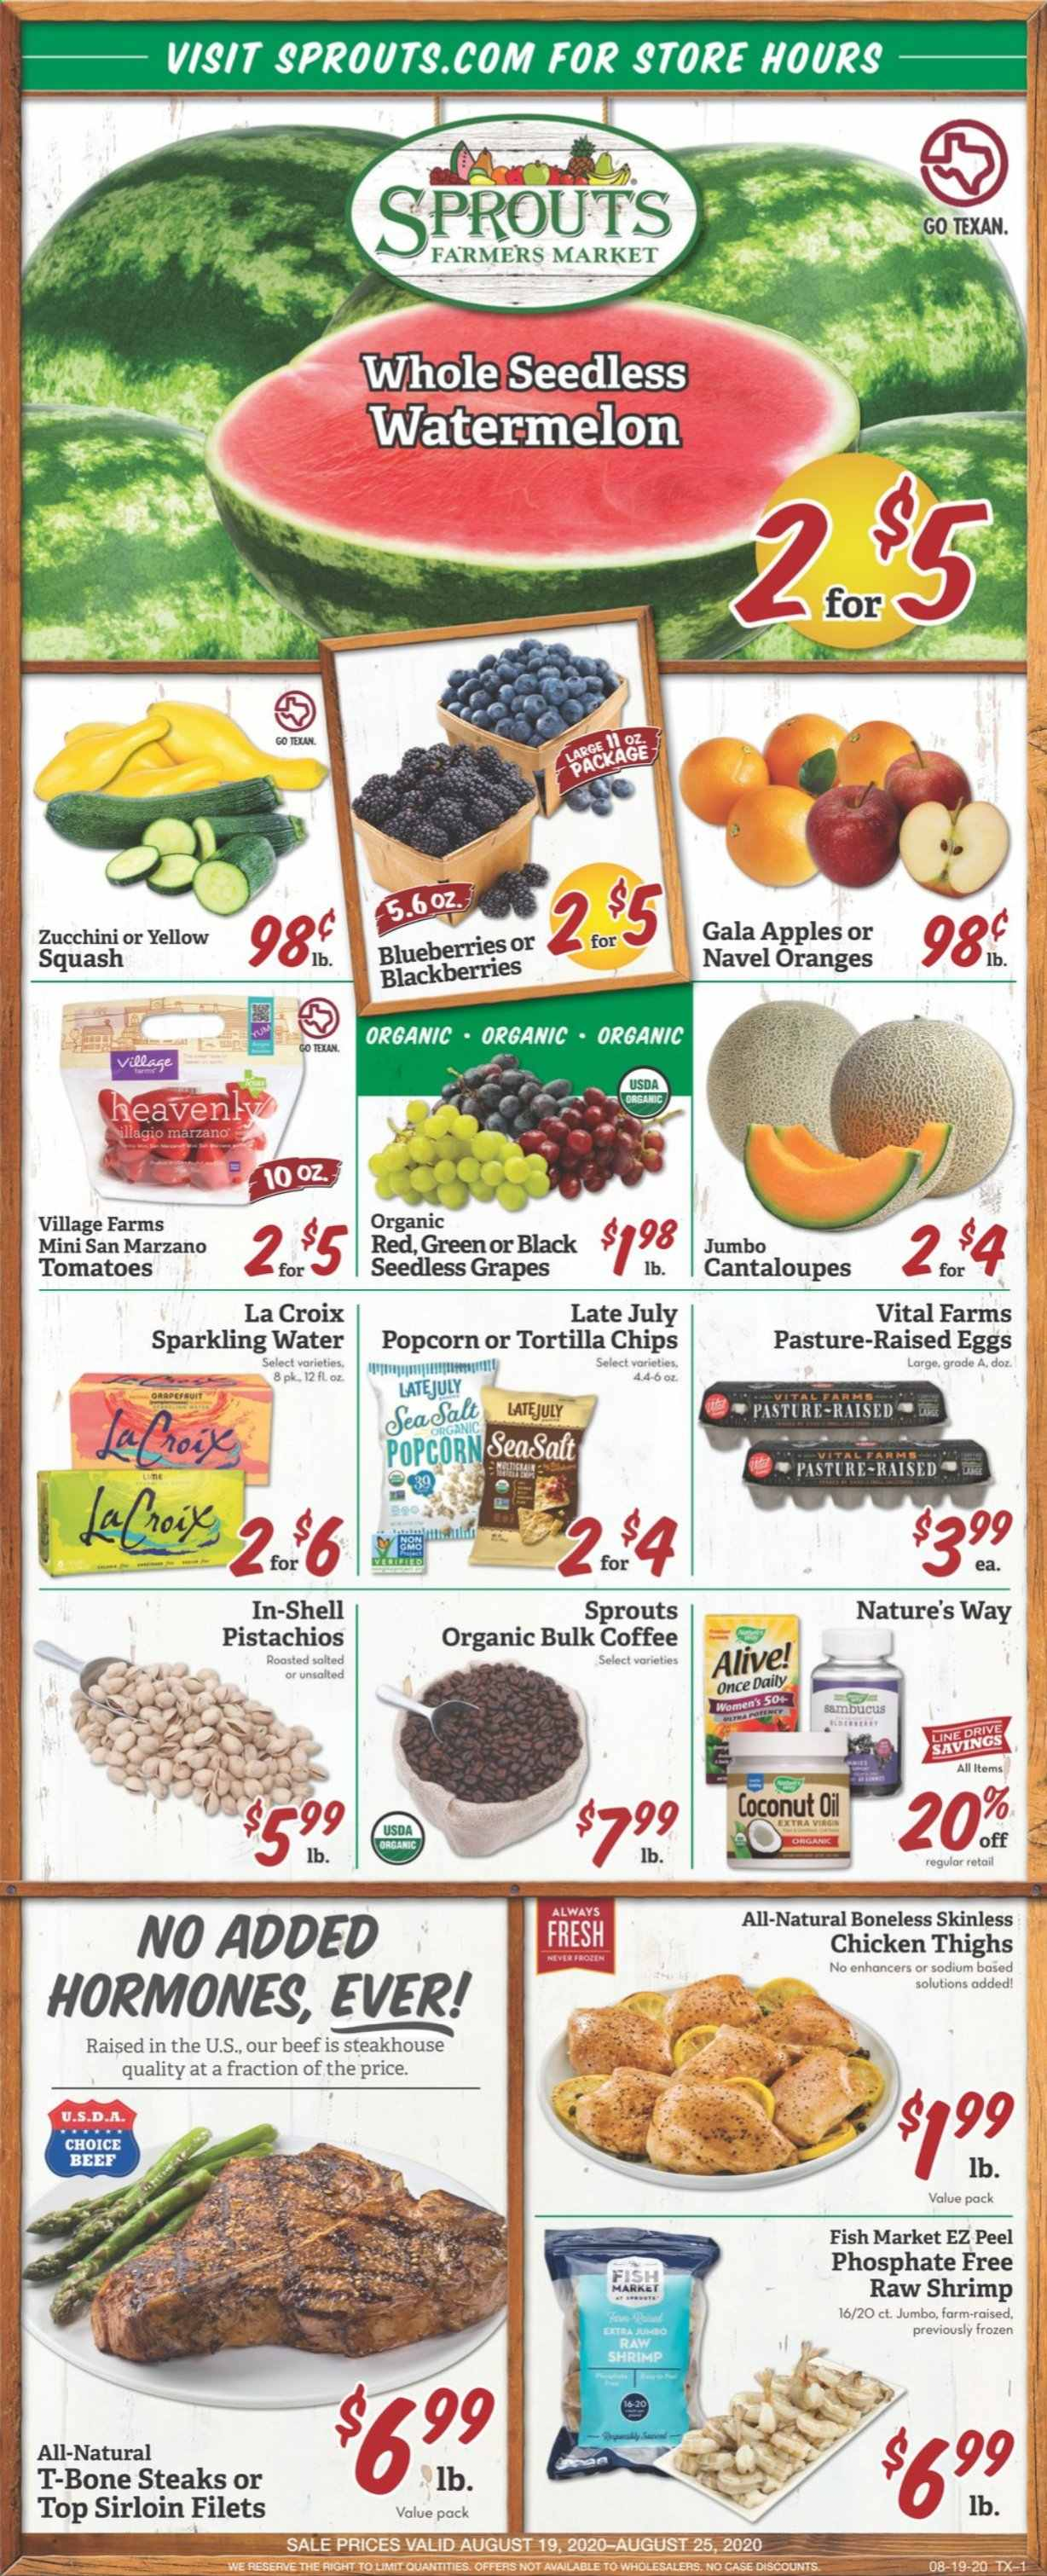 Sprouts Flyer - 08.19.2020 - 08.25.2020 - Sales products - cantaloupe, squash, tomatoes, zucchini, blackberries, blueberries, Gala, grapes, seedless grapes, watermelon, coconut, fish, shrimps, eggs, tortilla chips, chips, salt, sea salt, coconut oil, extra virgin olive oil, sparkling water, water, coffee, chicken, chicken thighs, beef meat, t-bone steak, Frozen. Page 1.